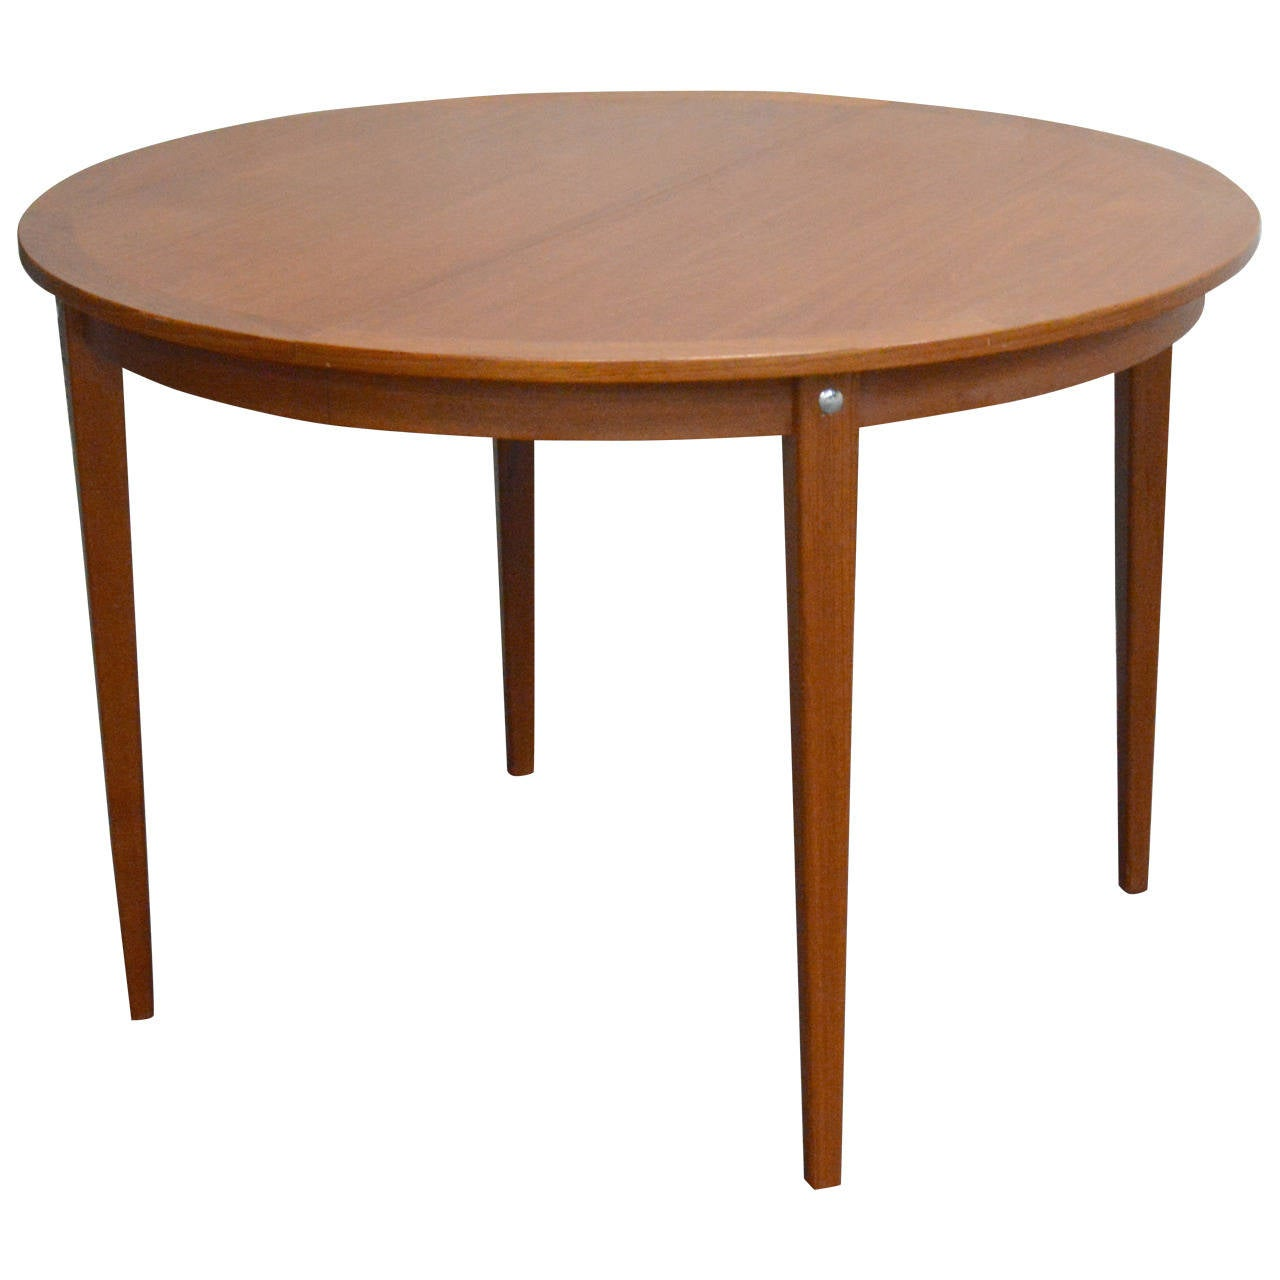 Emejing modern round dining room tables photos for Modern round dining room tables